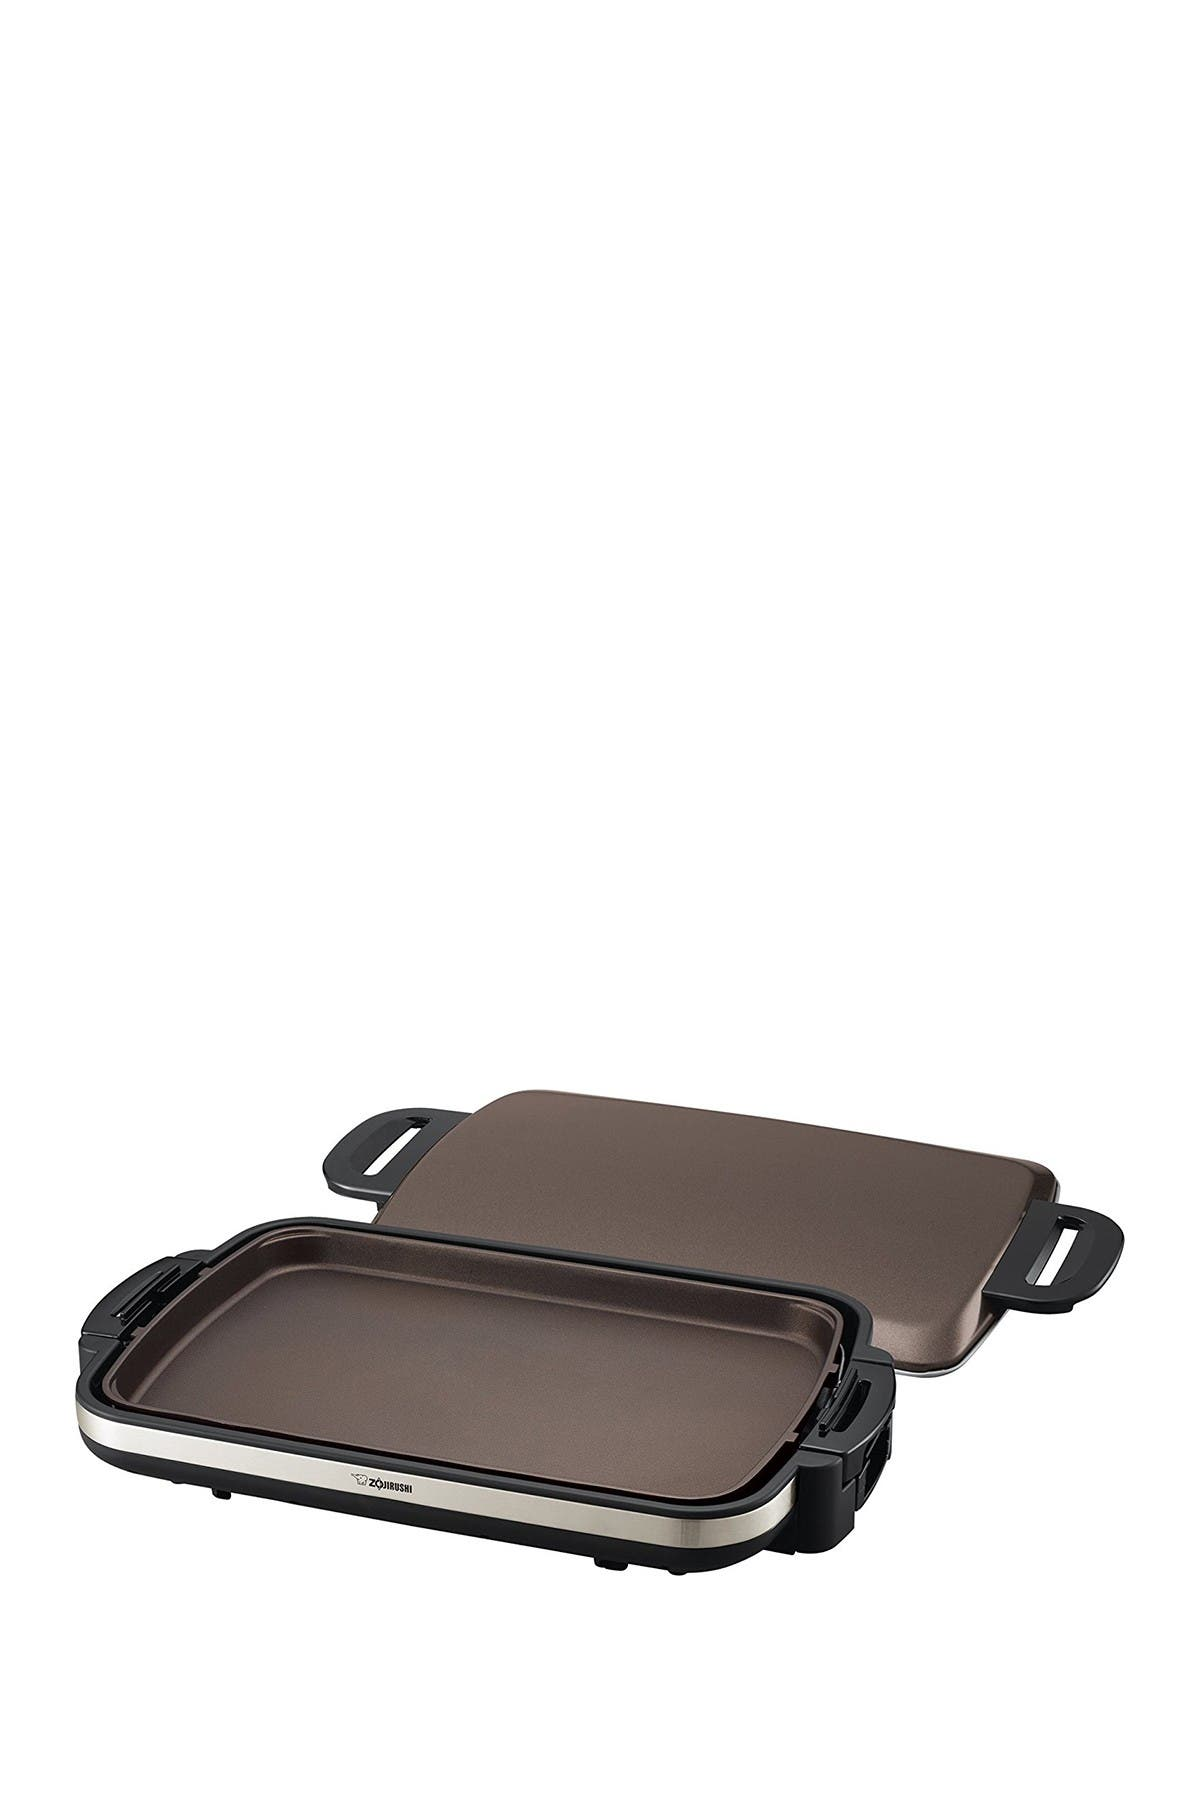 Image of ZOJIRUSHI Gourmet Sizzler Electric Griddle - Stainless Brown